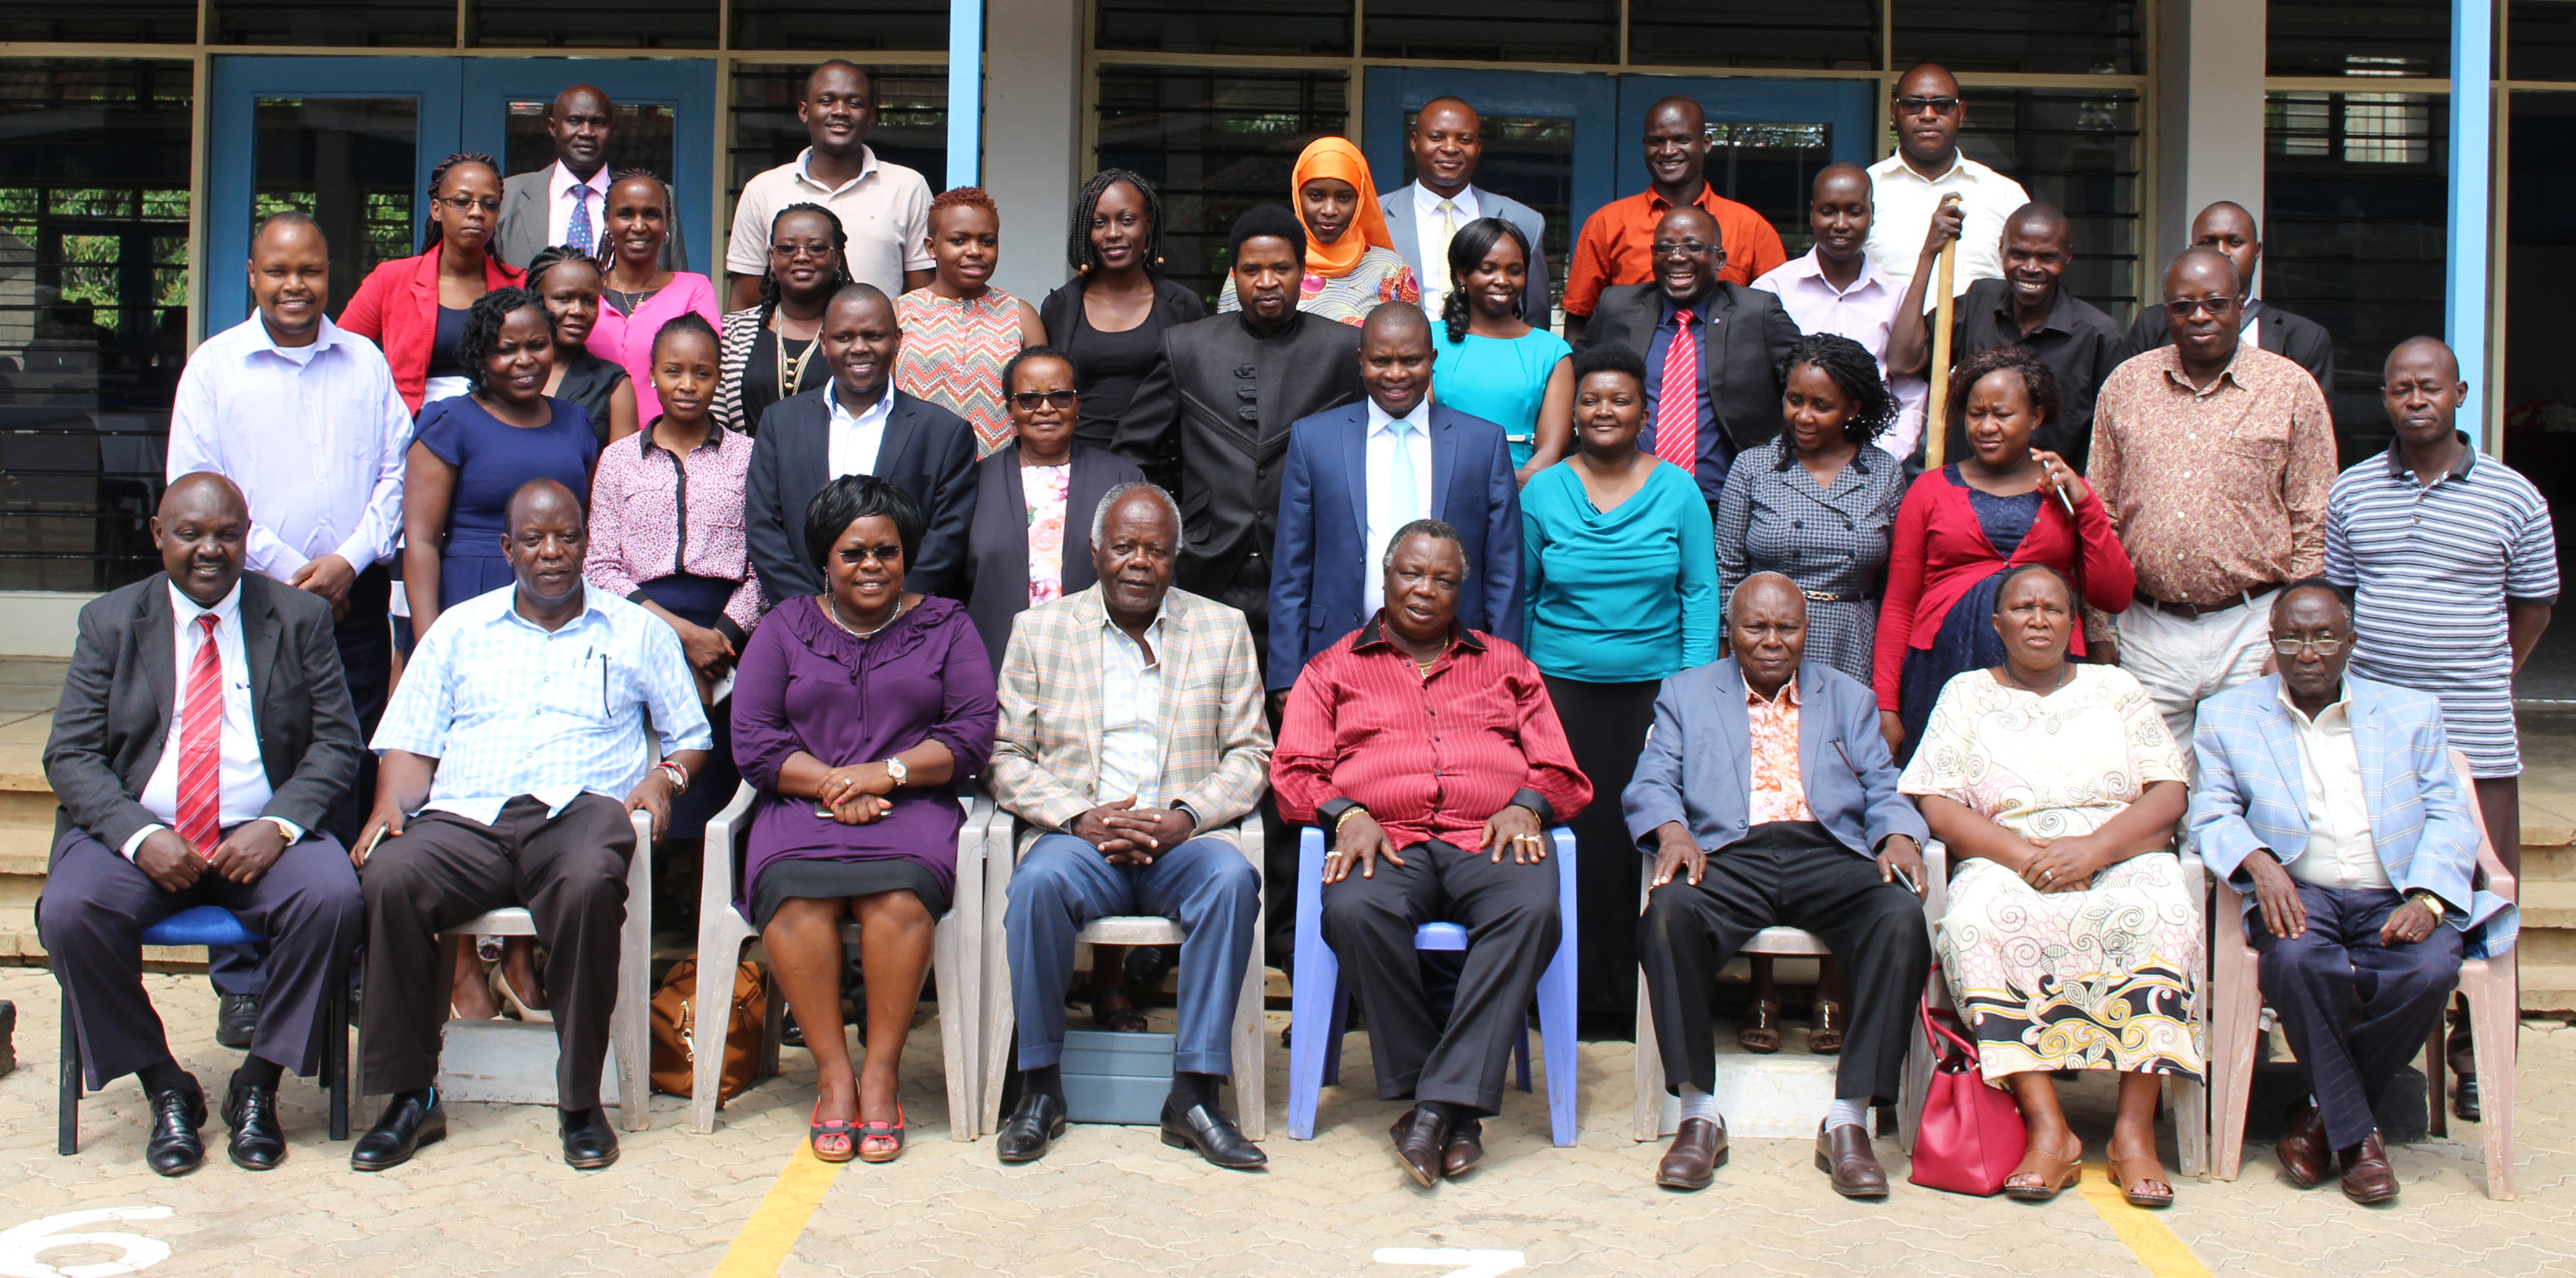 COTU-K Reviews its Strategic Plan at Tom Mboya Labour College